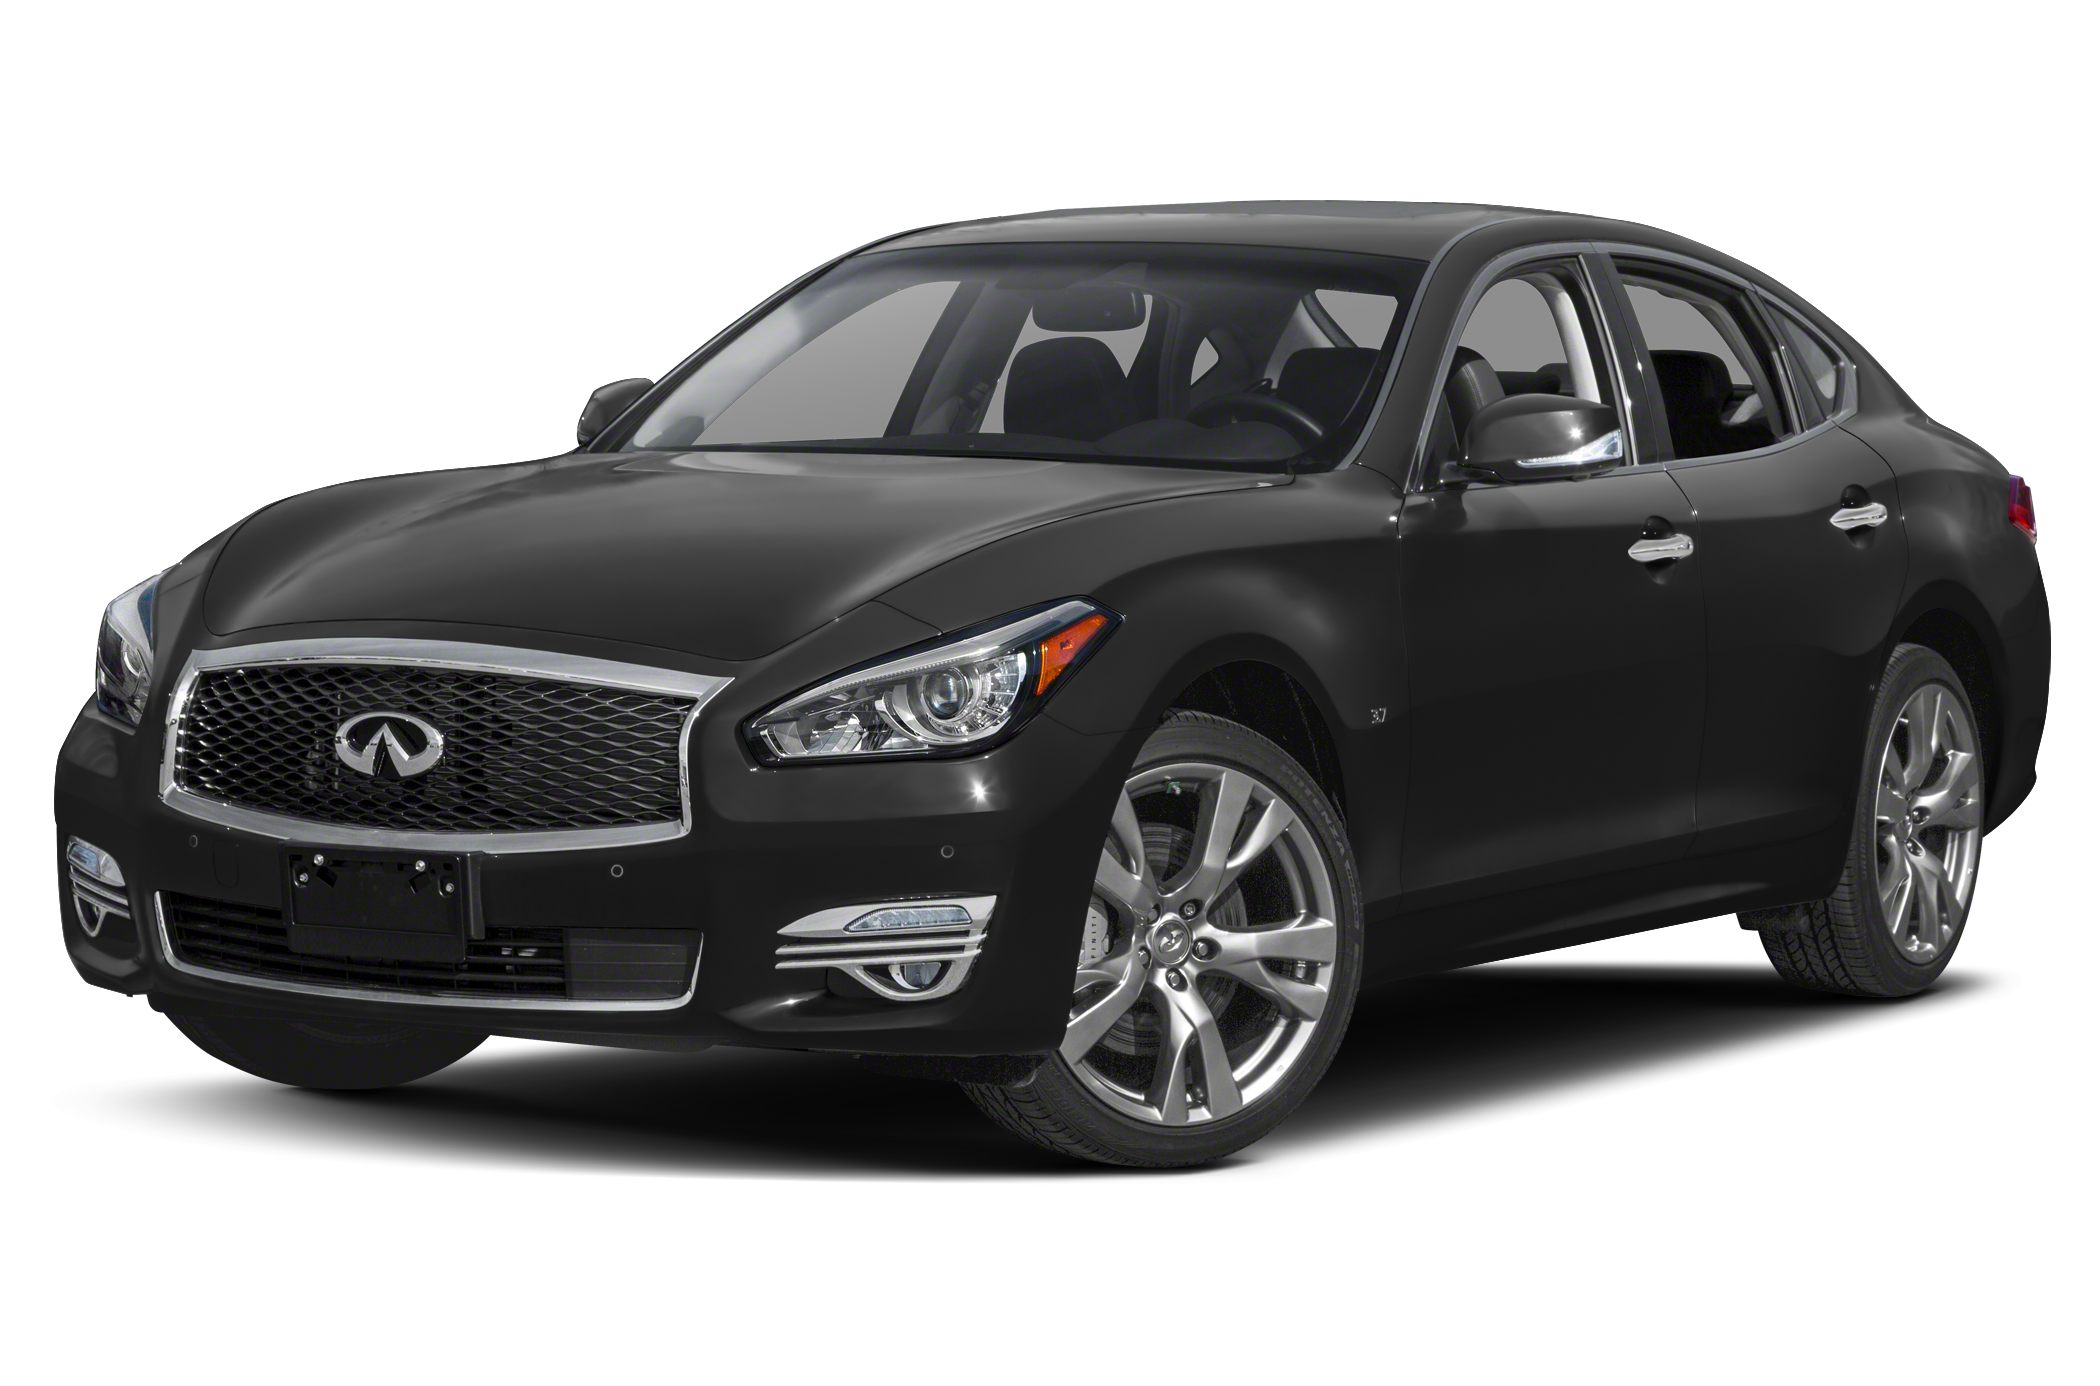 2015 Infiniti Q70 stretches out in NYC